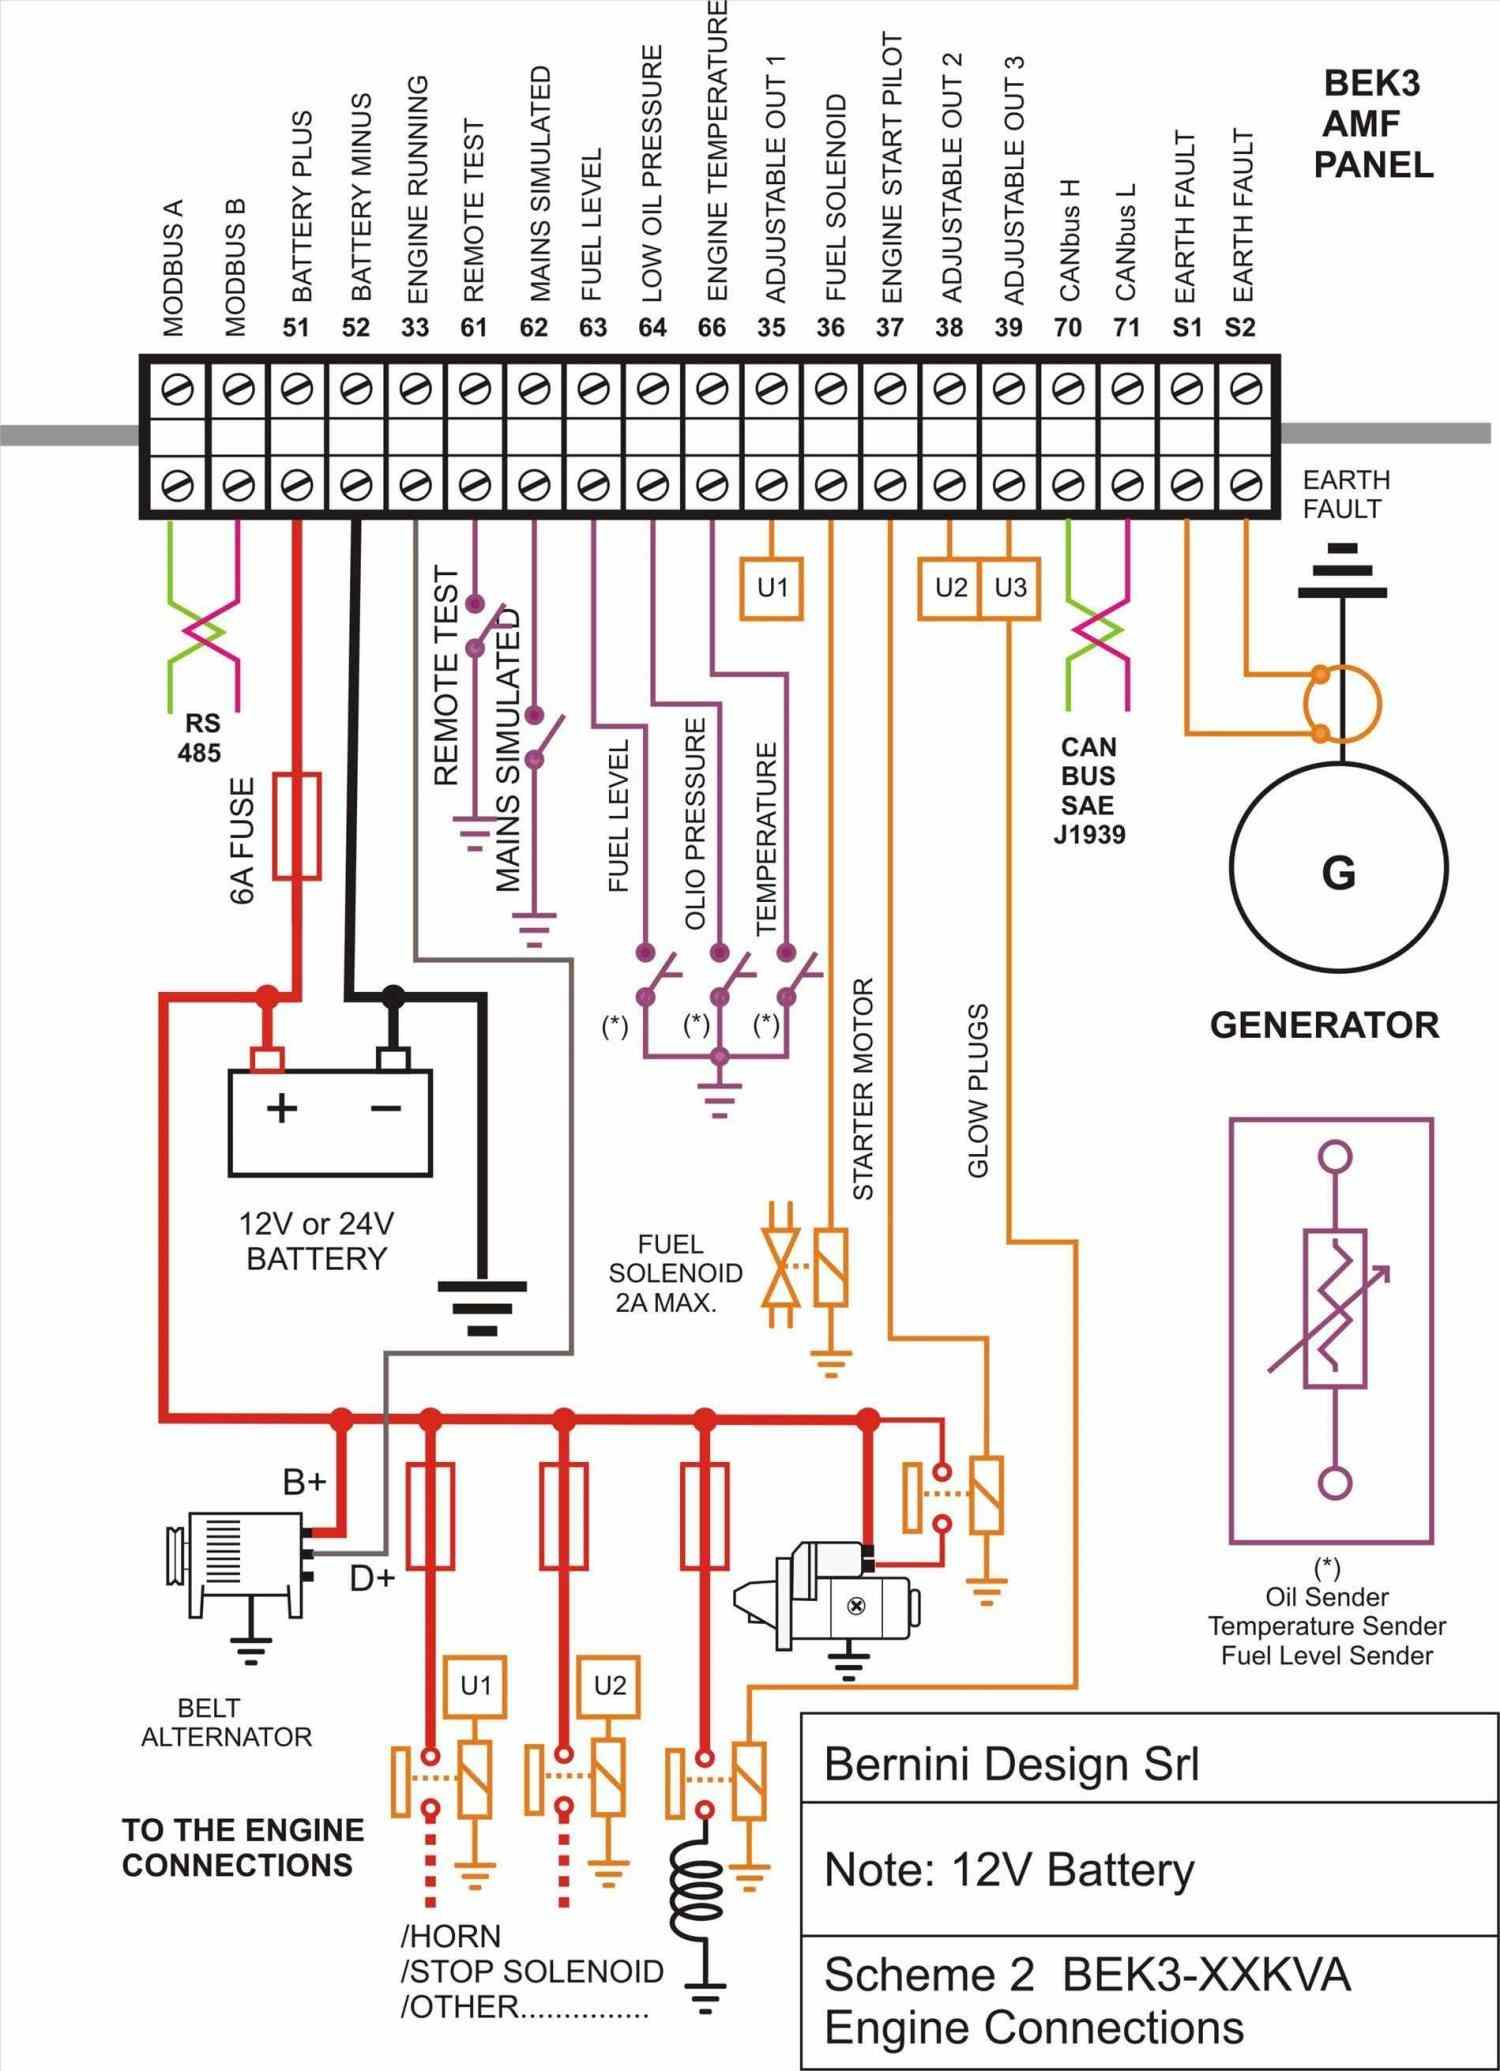 Lennox Furnace With Honeywell Wiring Diagram Toyota Wiring Harness Diagram Begeboy Wiring Diagram Source